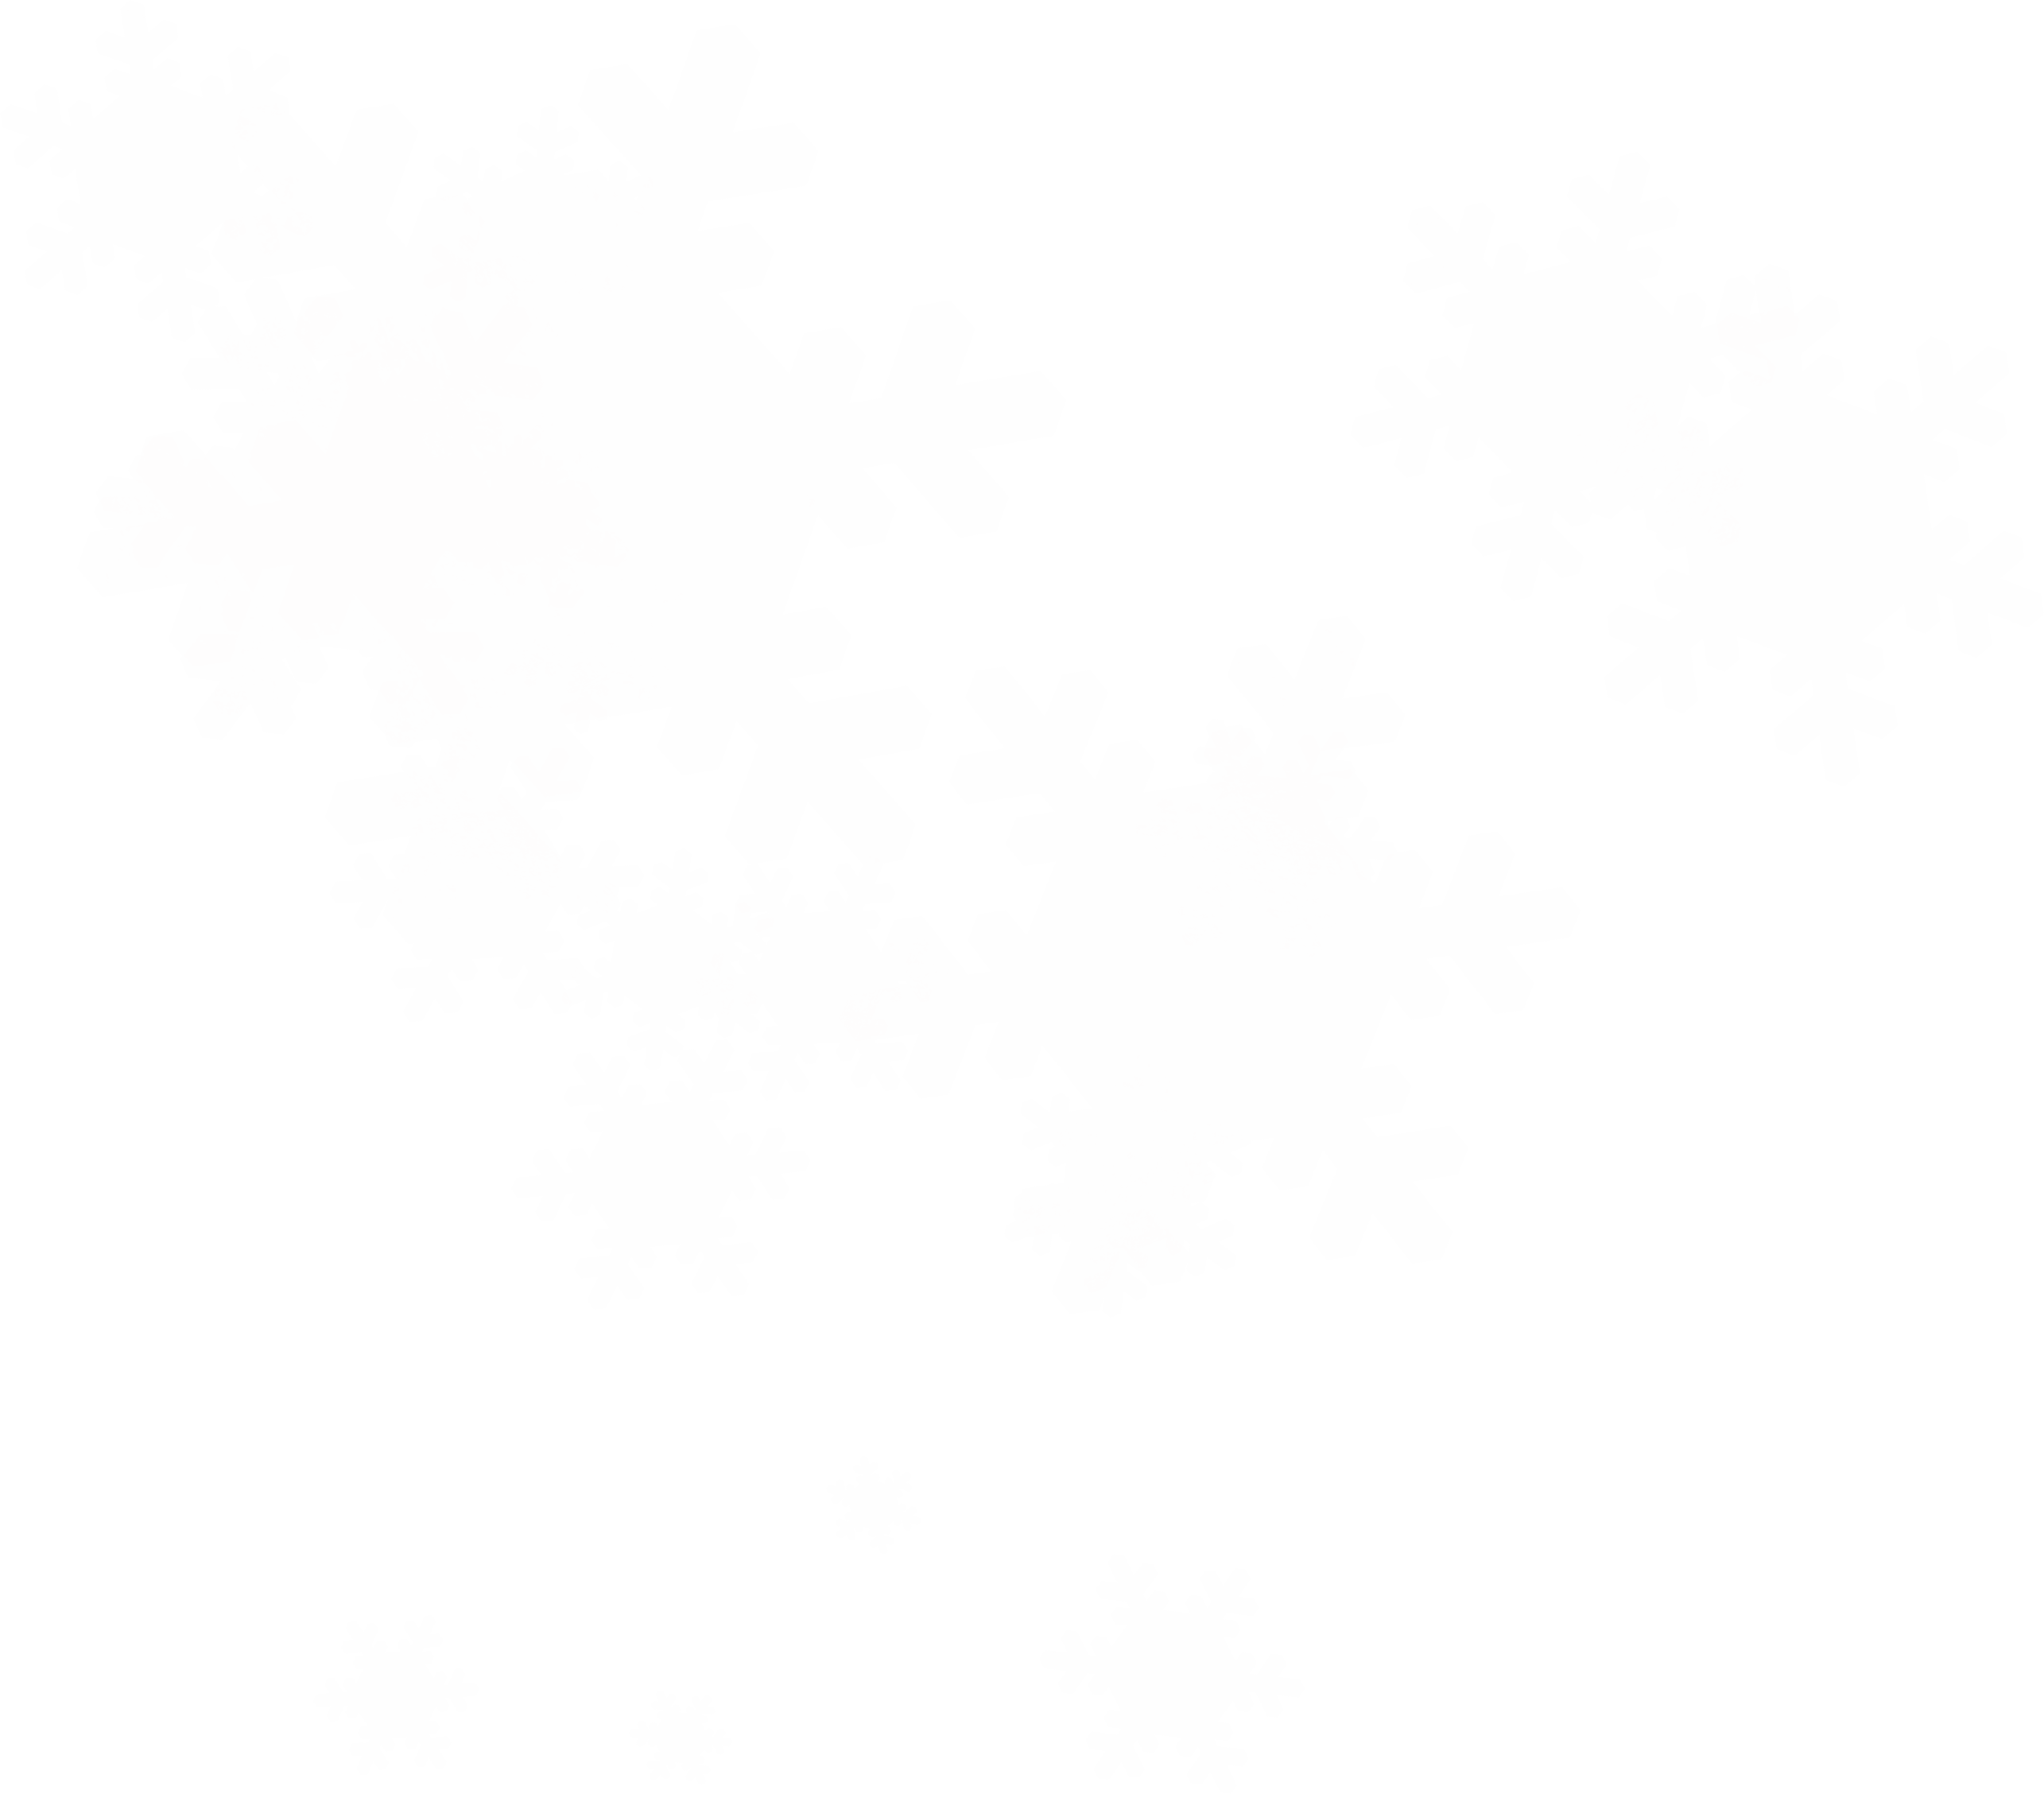 Snowflakes PNG images free download, snowflake PNG.